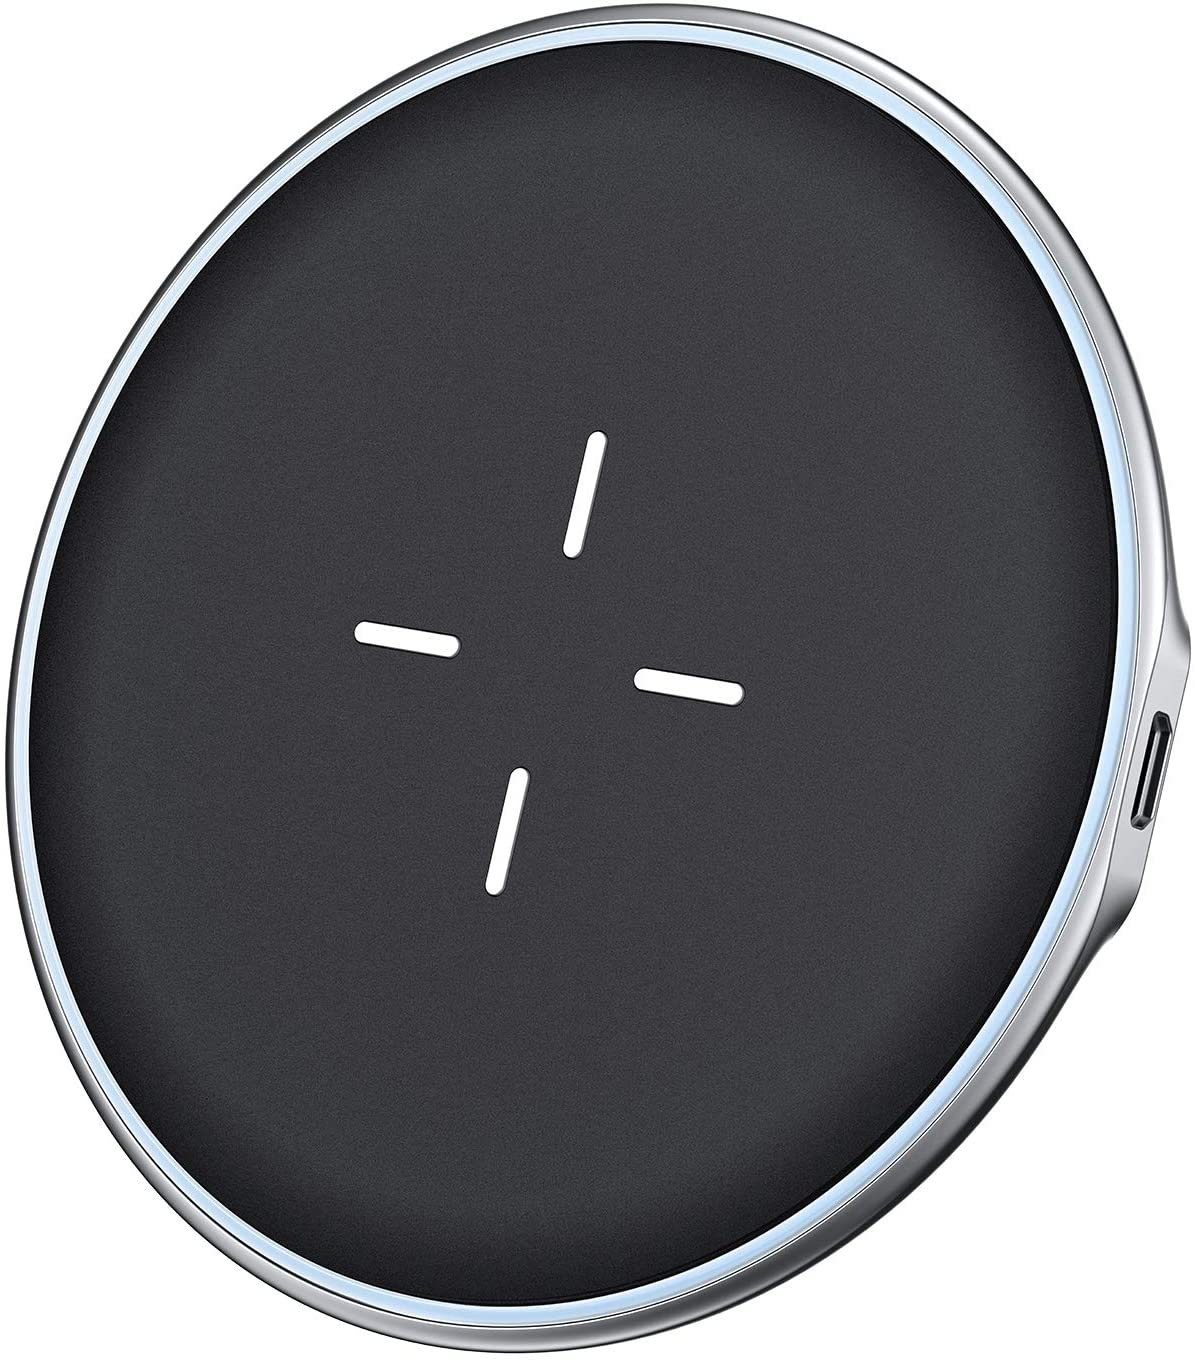 VANMASS Wireless Charger, Zinc Alloy,Rapid Cooling, Fast Wireless Charging Pad, 10W Qi Wireless Charger Compatible with Xs Max/Xs/Xr/X/8/8 Plus, Galaxy S7/S8/S9/S10, 5W for Qi-Enabled Phones (Black)